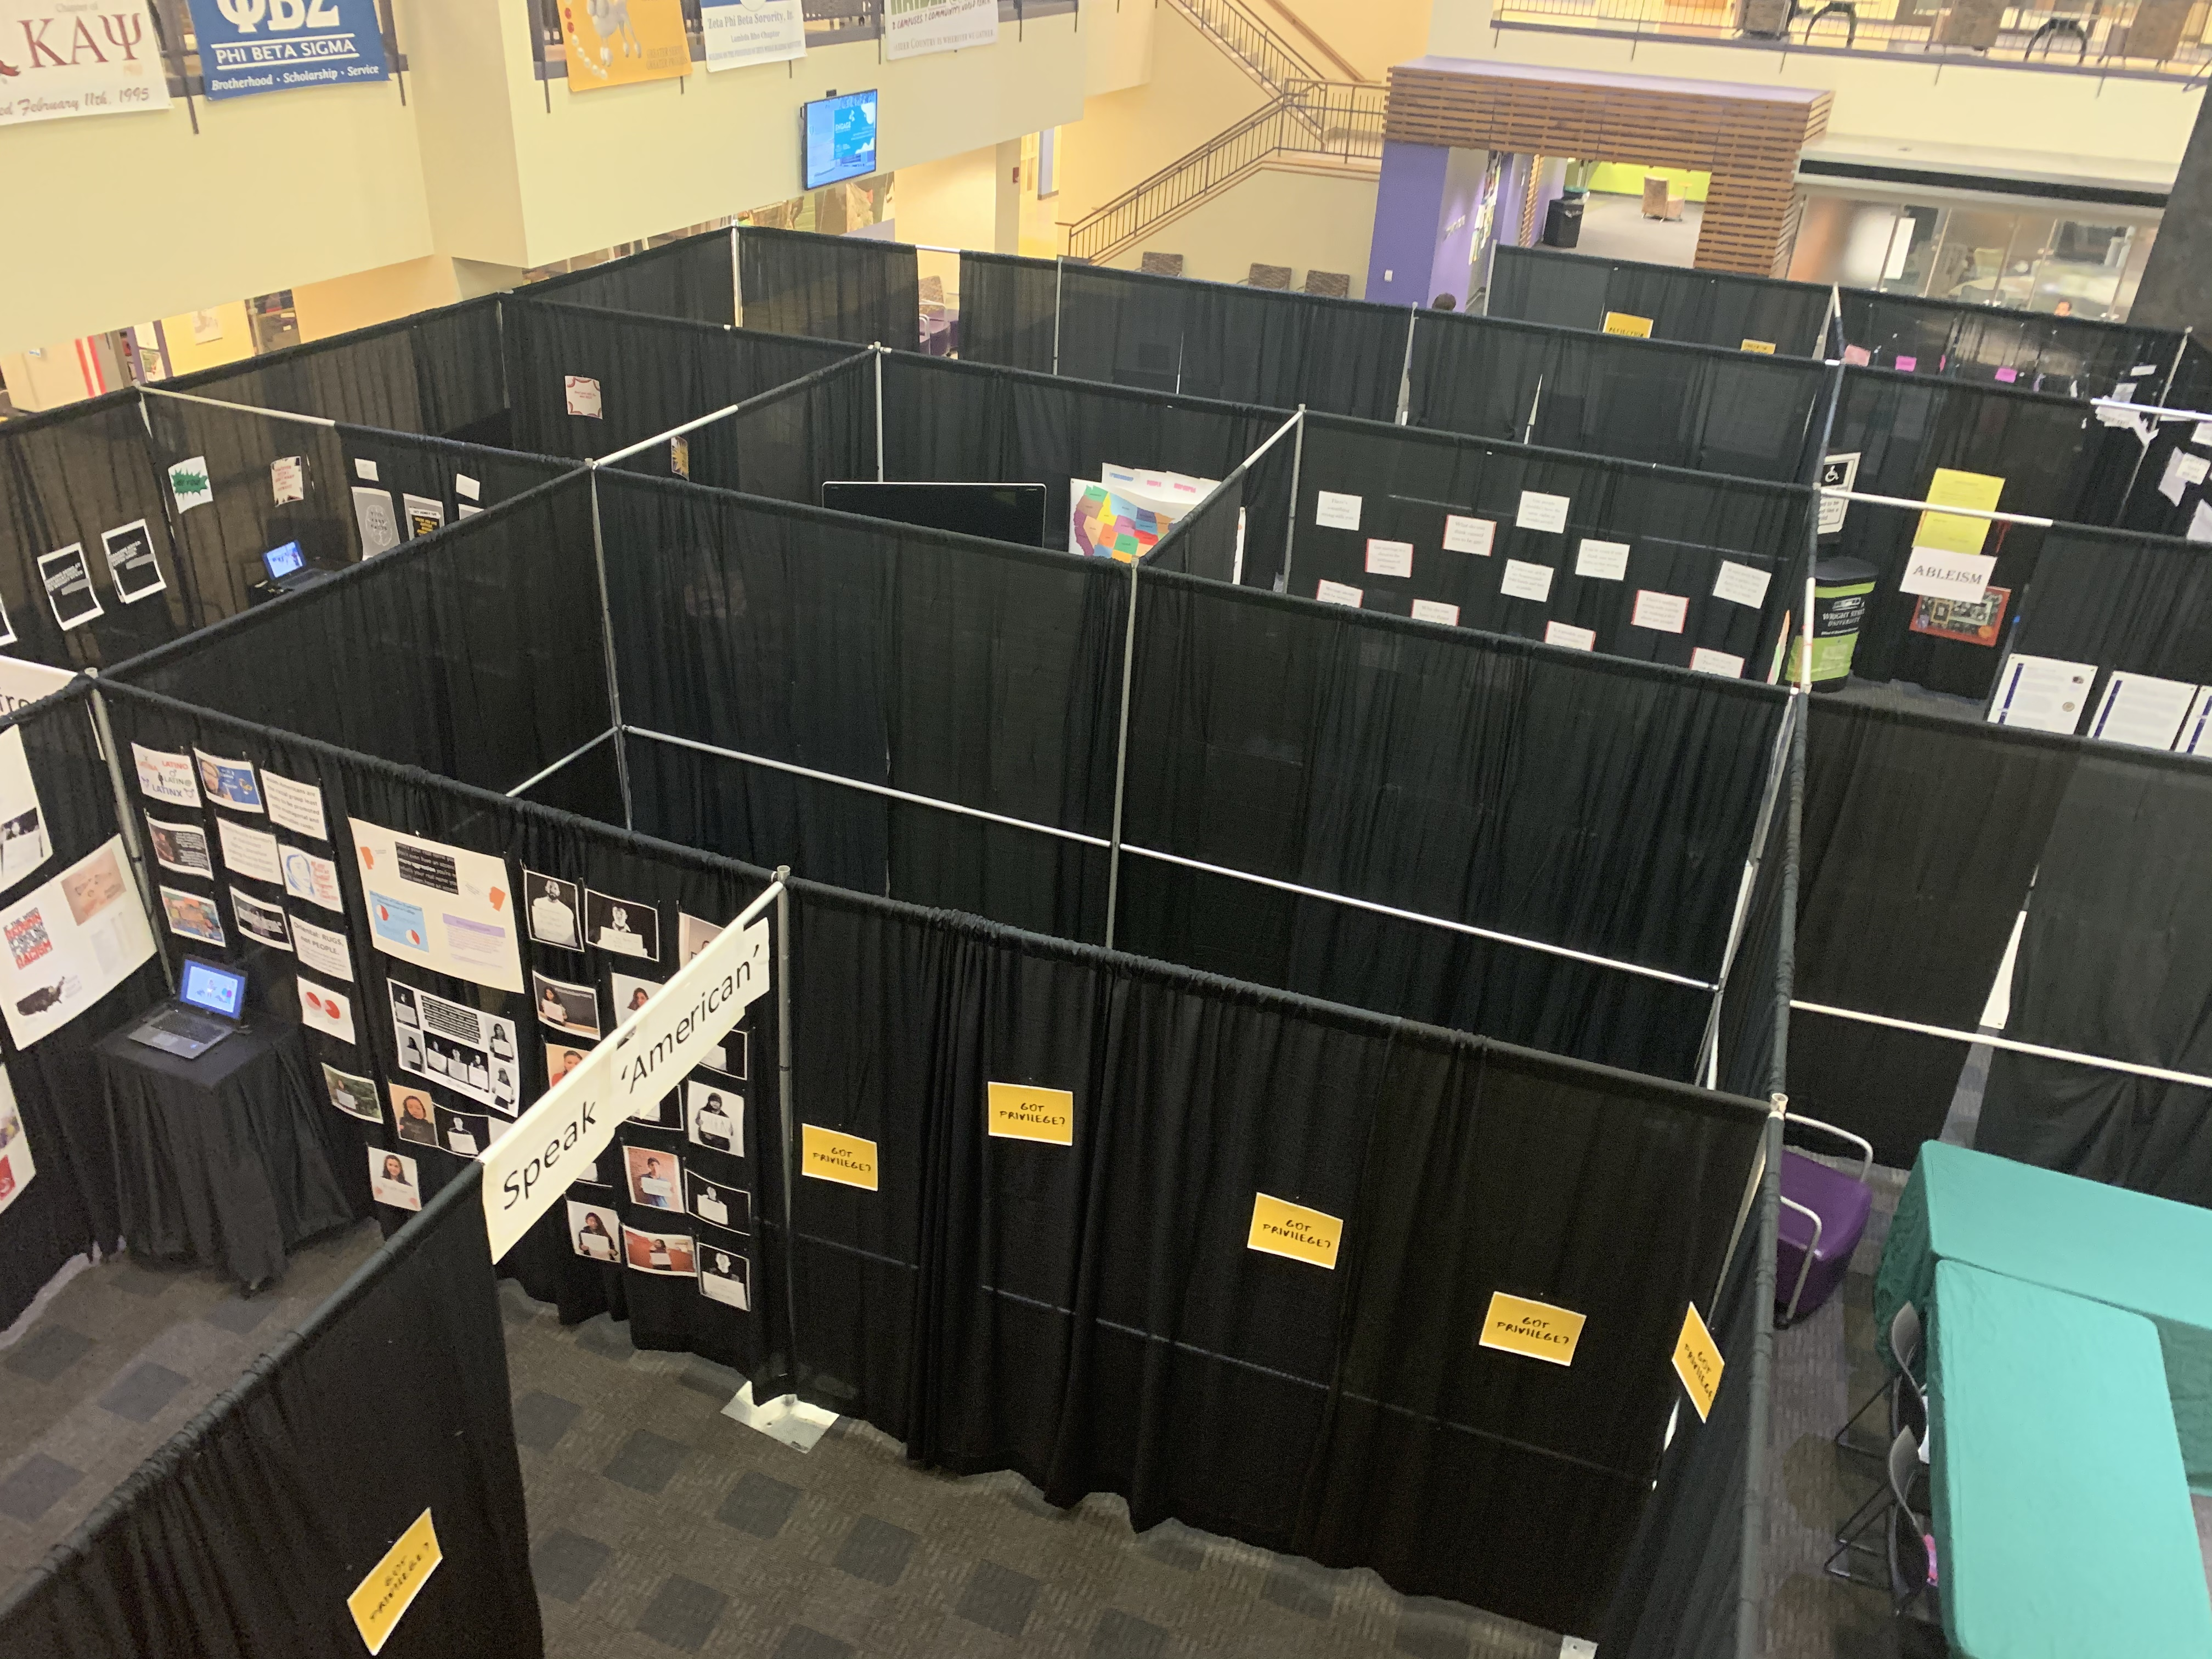 Tunnel of Oppression in the Student Union